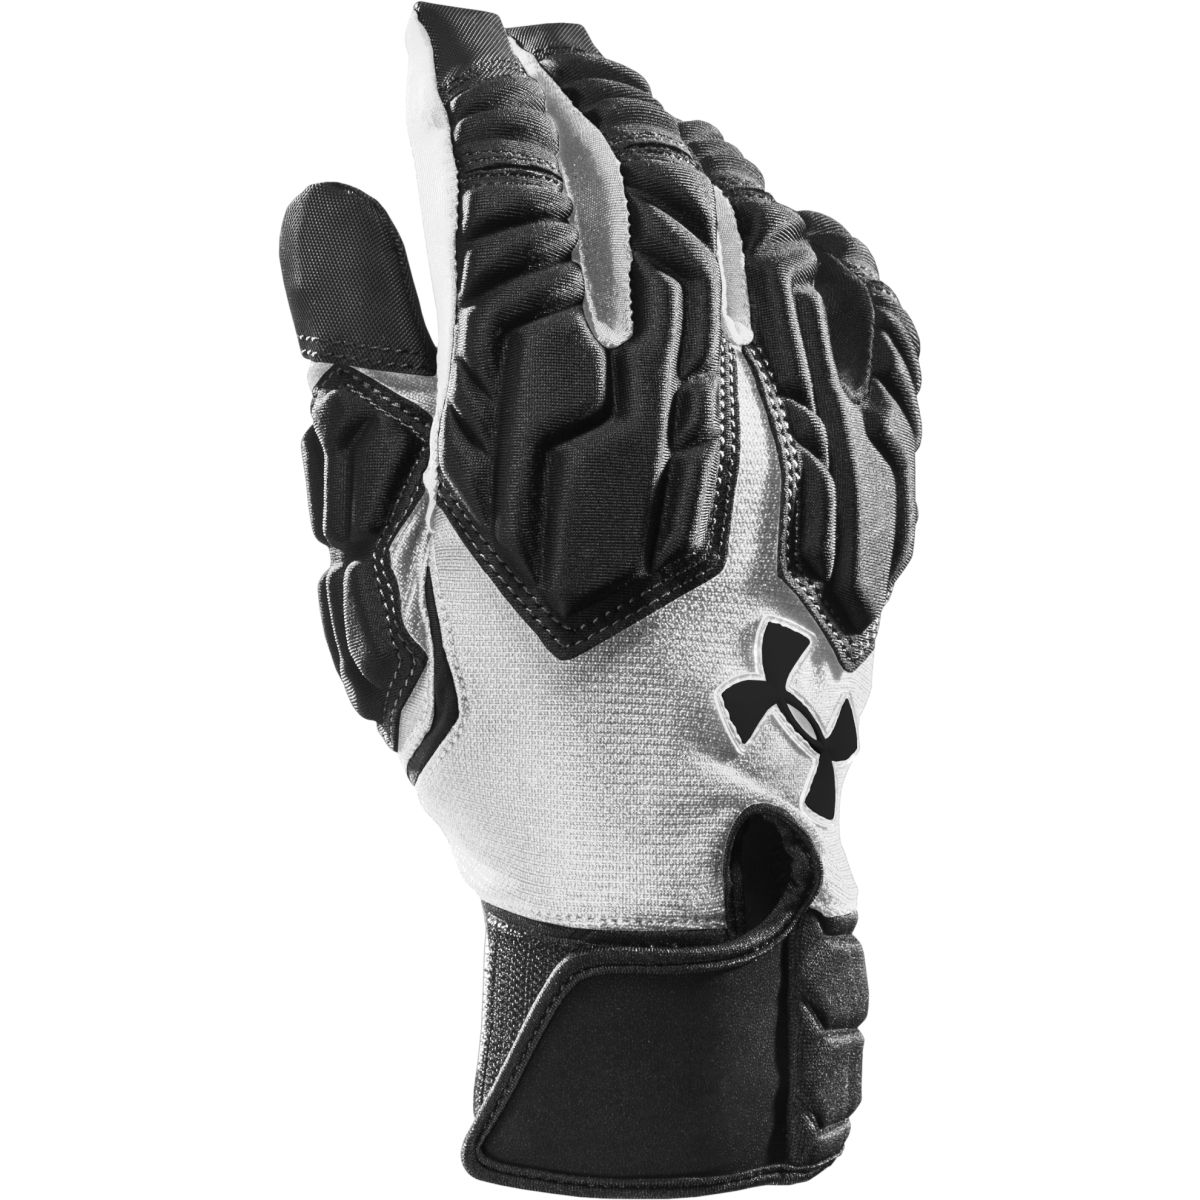 Under armour leather work gloves - Under Armour Combat Iii Padded Football Glove Black